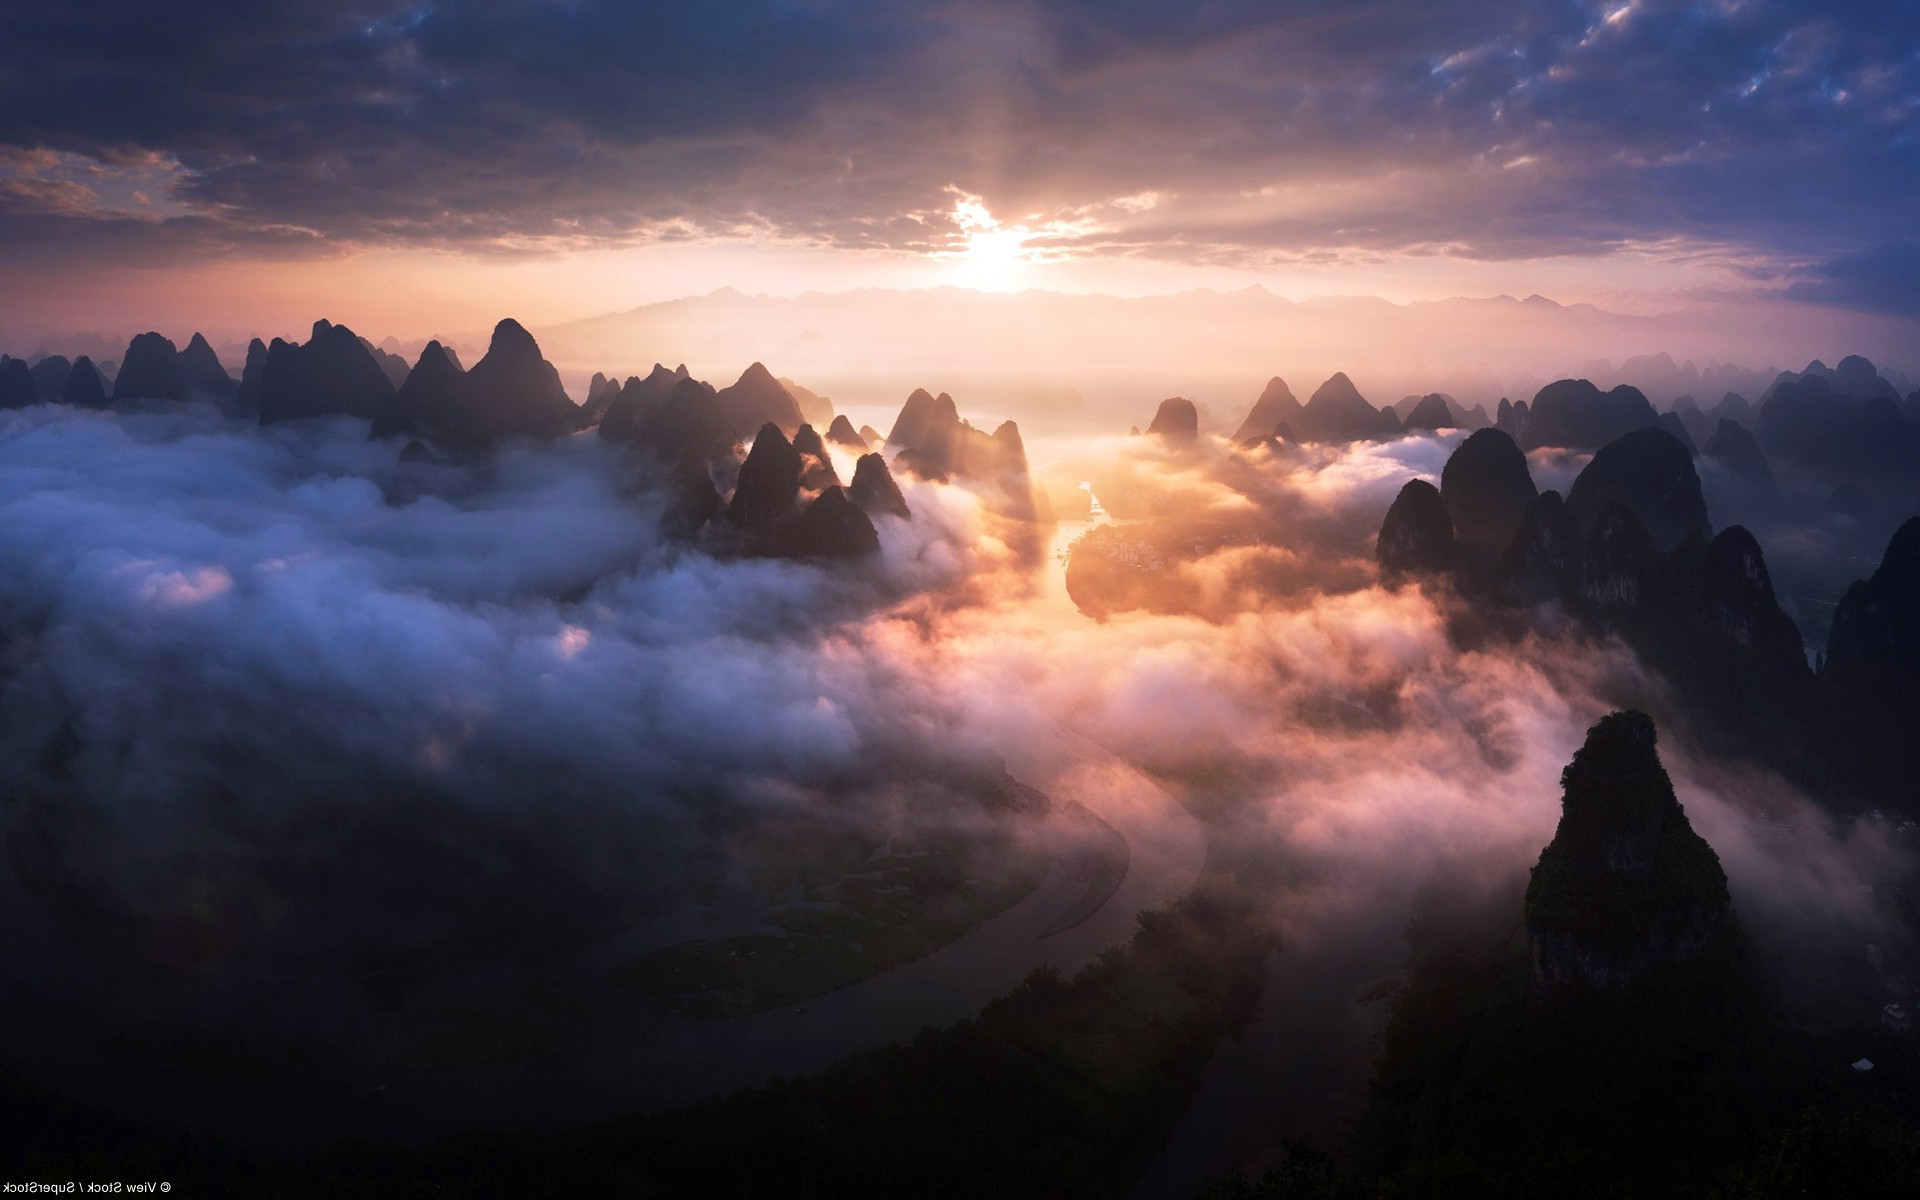 nature Landscape Mountain Clouds Sunlight River Wallpapers HD 1920x1200